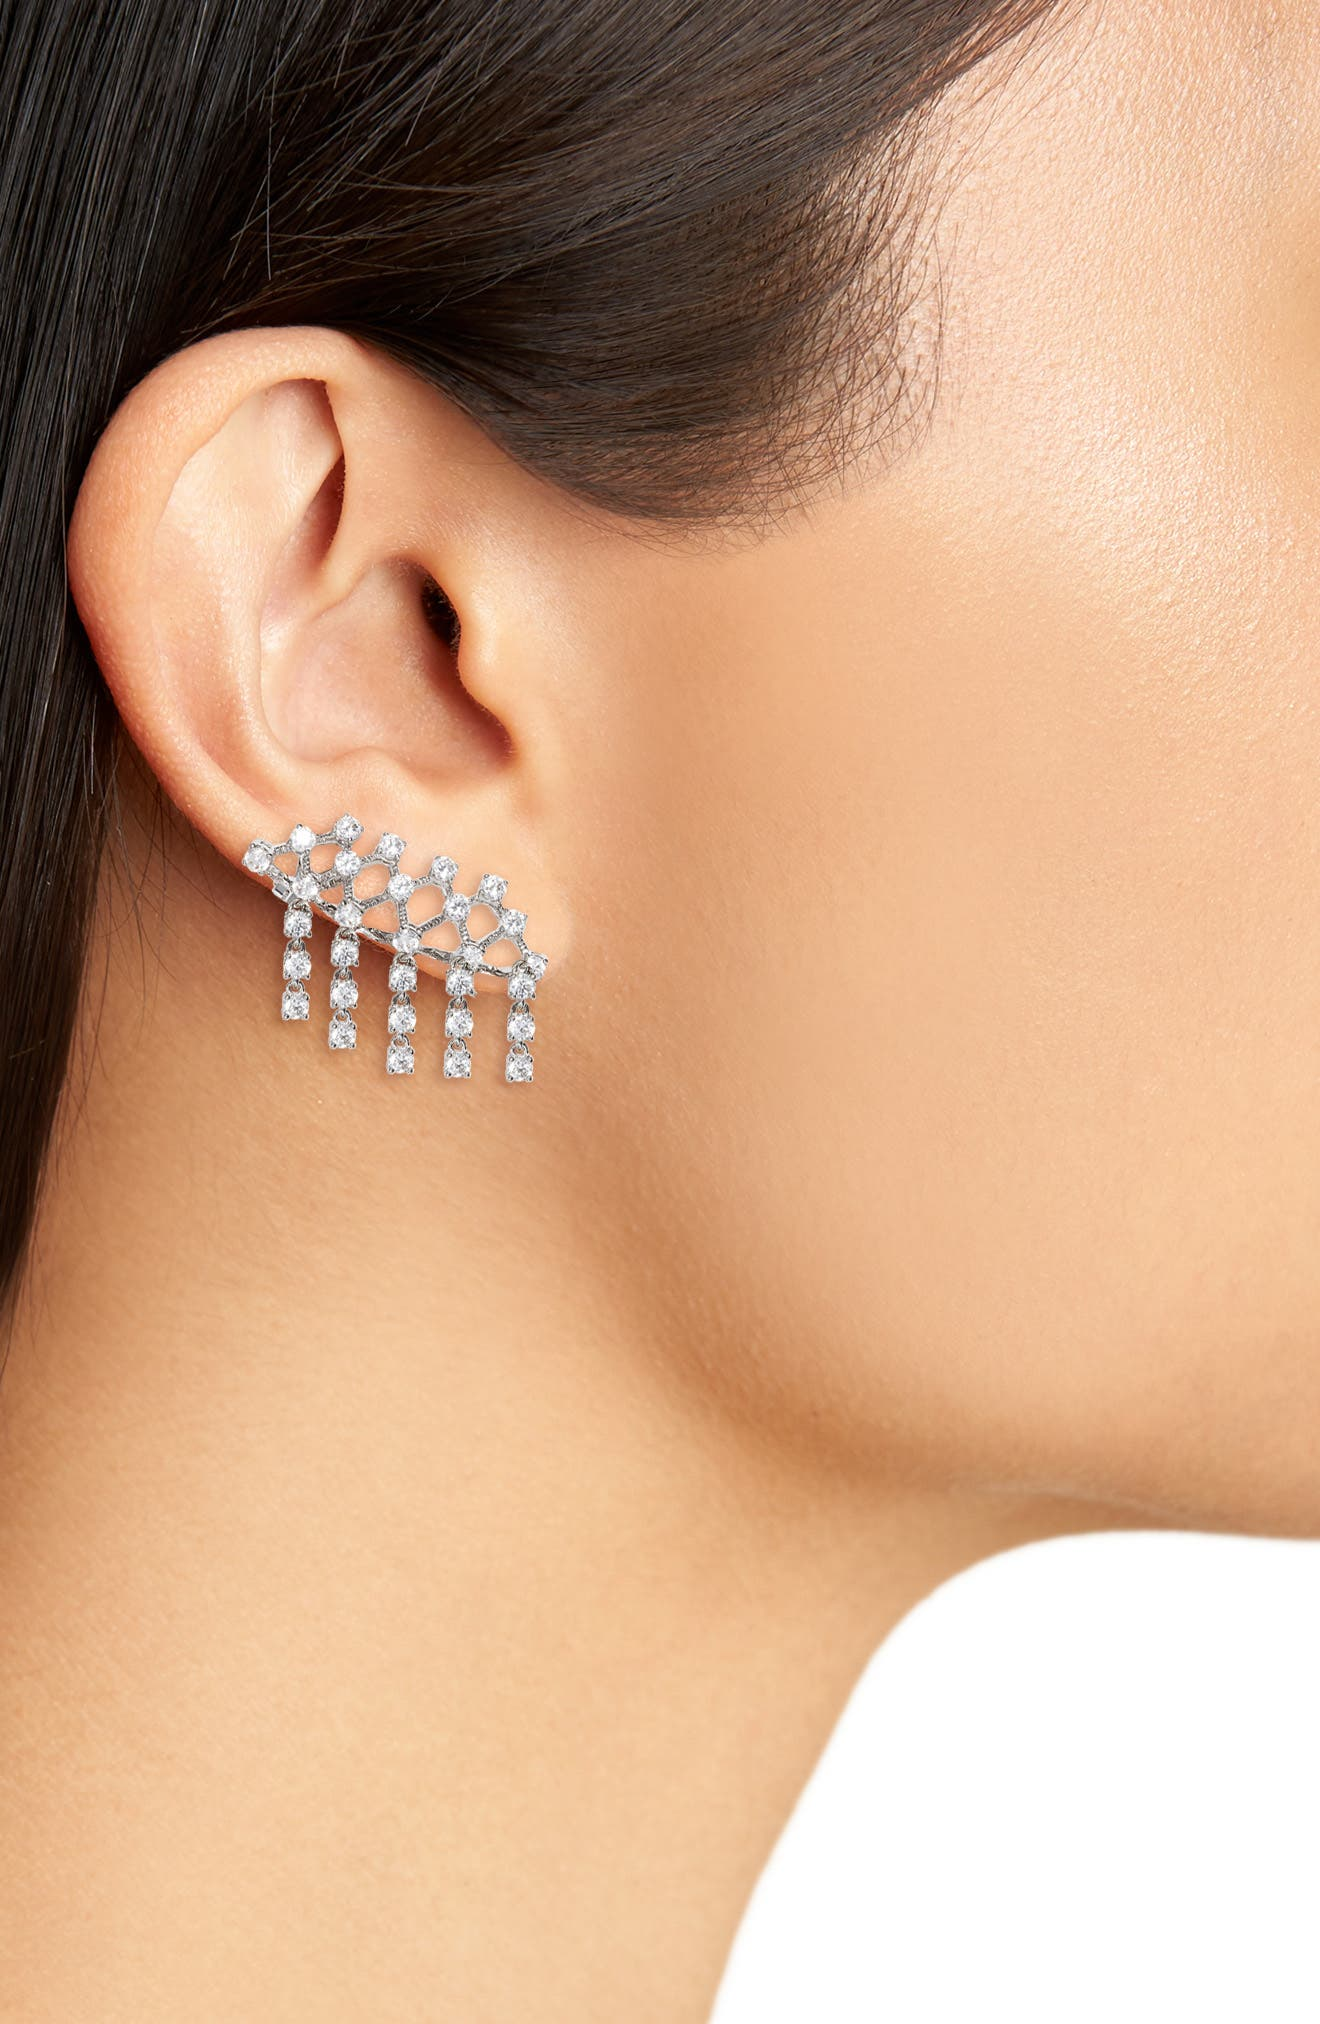 Rio Cubic Zirconia Ear Crawlers,                             Alternate thumbnail 2, color,